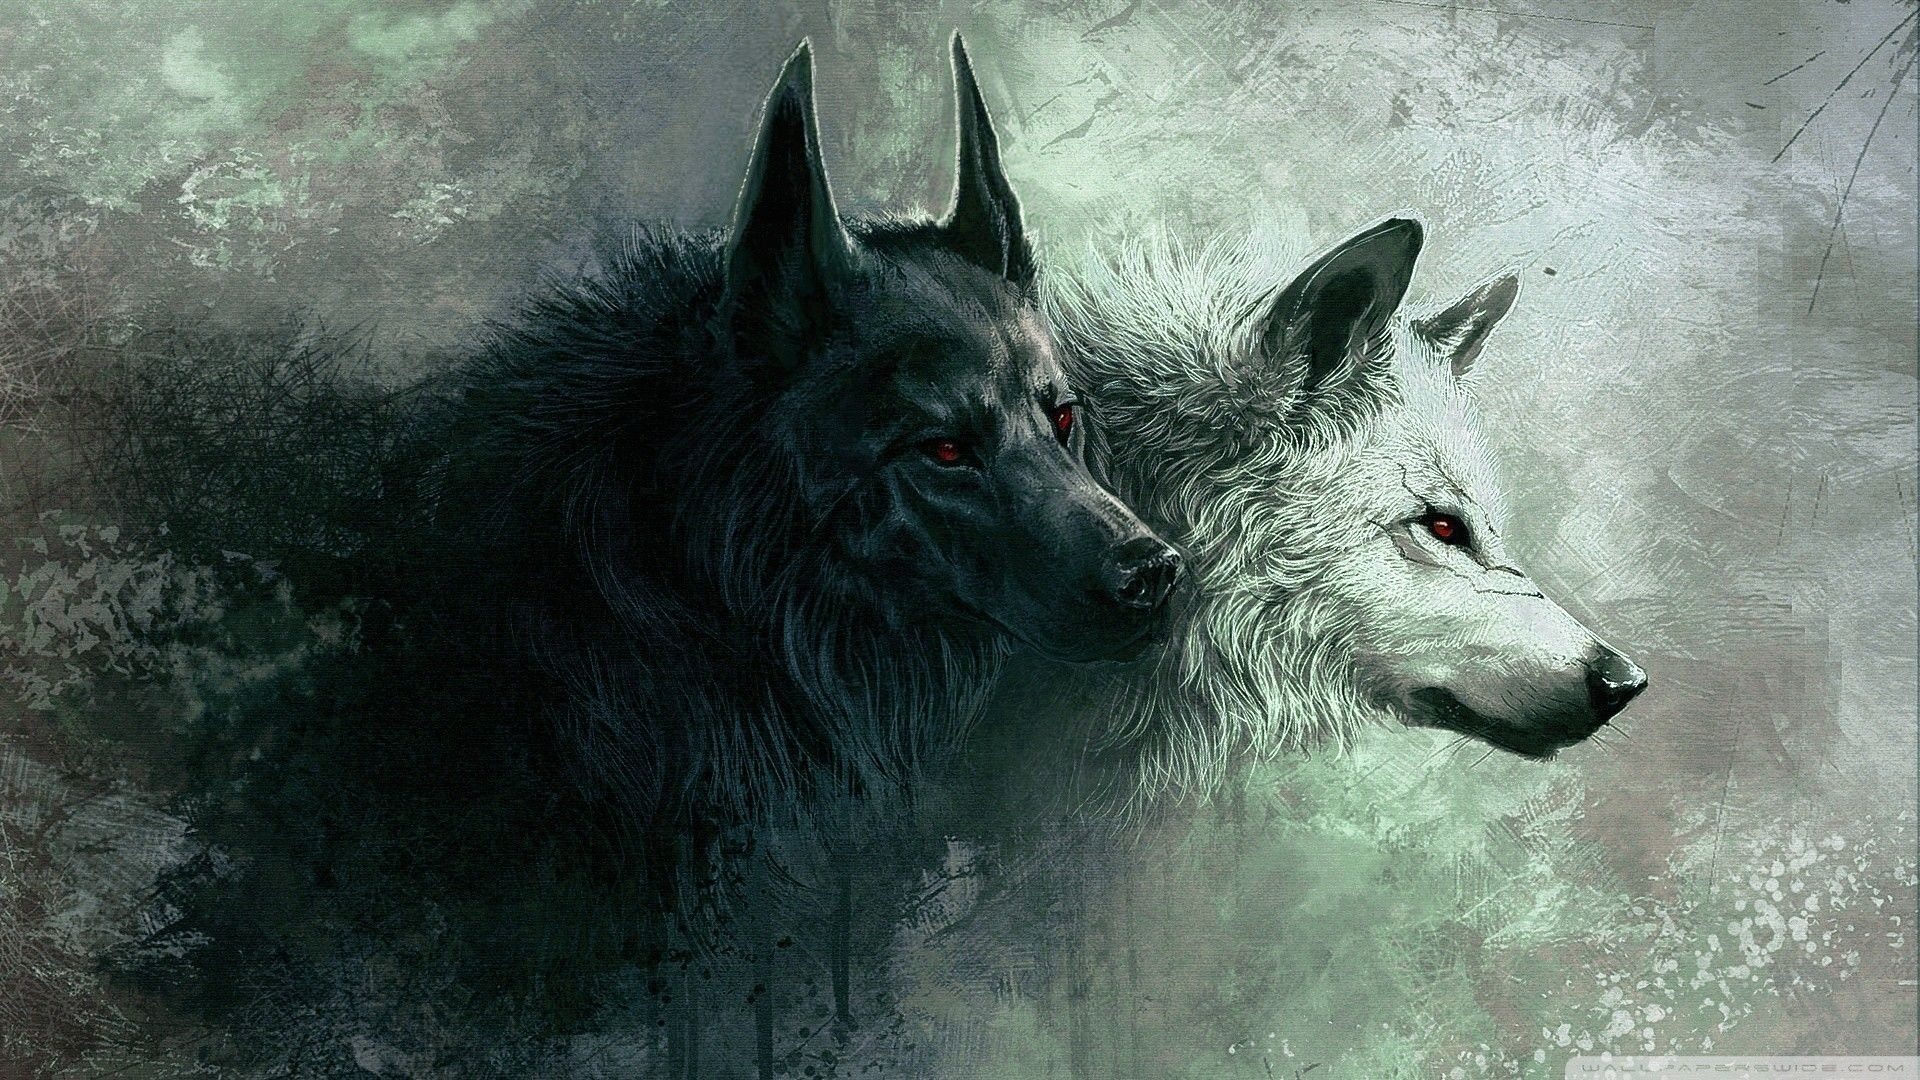 Lone Wolf Wallpaper 1280A 1024 Wallpapers 38